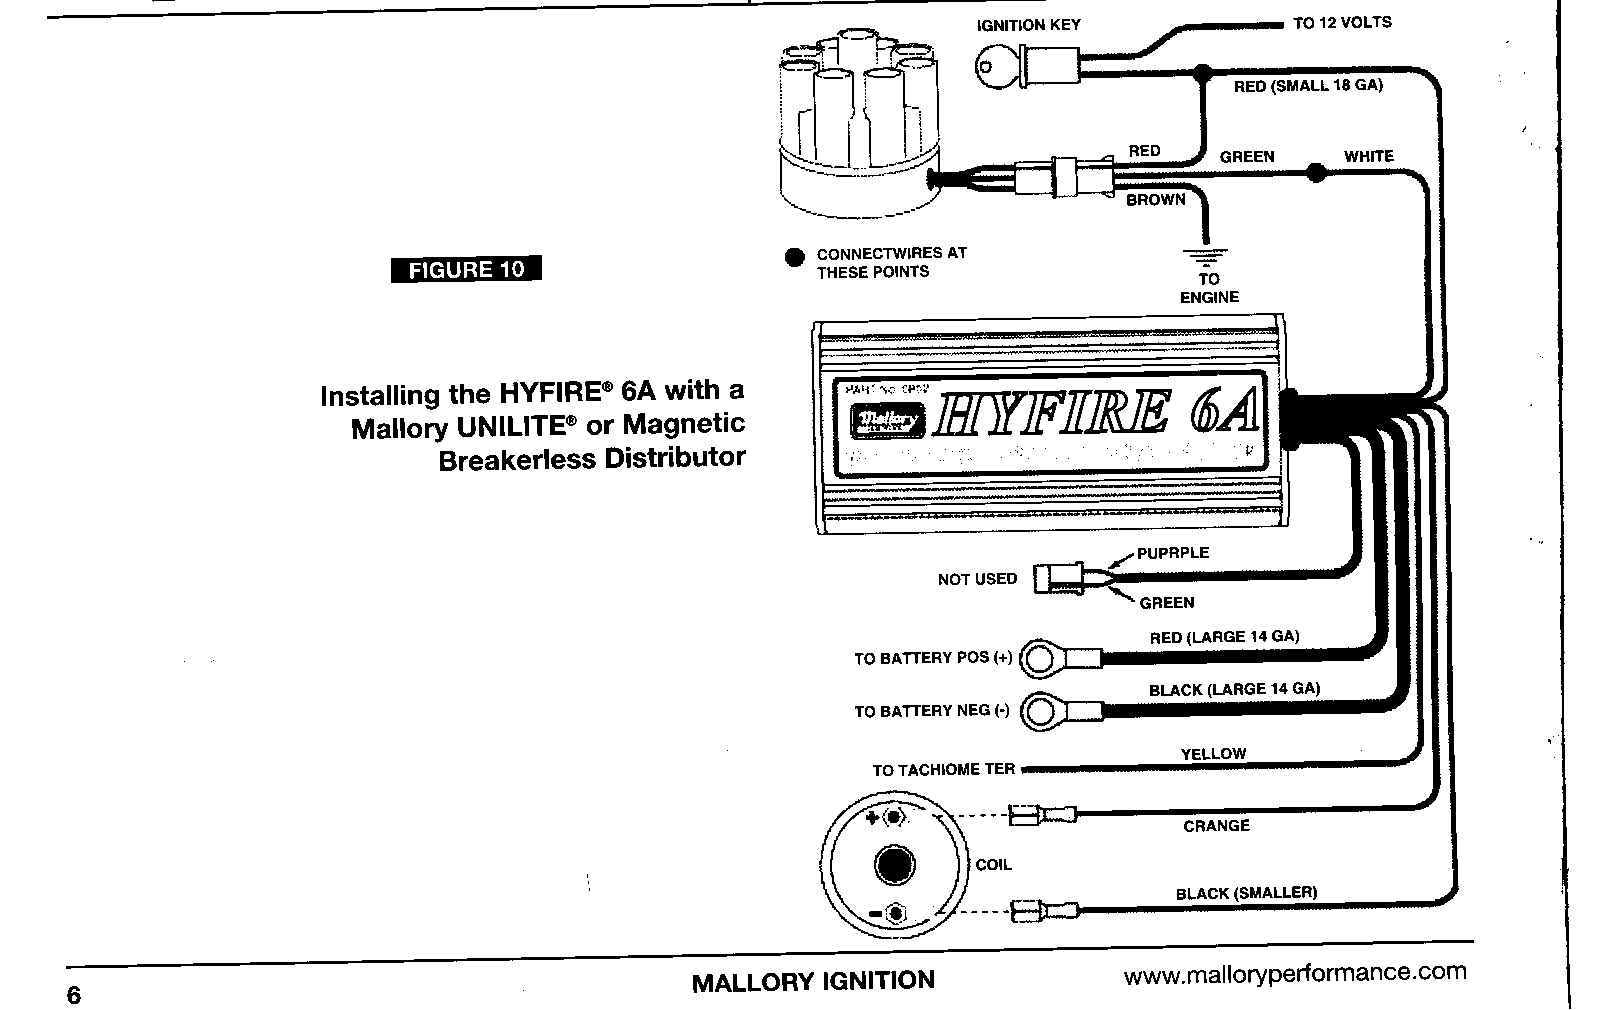 914World.com | Mallory Unilite with Mallroy AL6 Wiring help needed on inboard outboard motor diagram, mallory high fire wiring-diagram, basic car electrical system diagram, electronic ignition diagram, mallory dist wiring-diagram, fairbanks morse magneto diagram, omc ignition switch diagram, mallory carburetor diagram, msd 6al diagram, atwood rv water heater diagram,